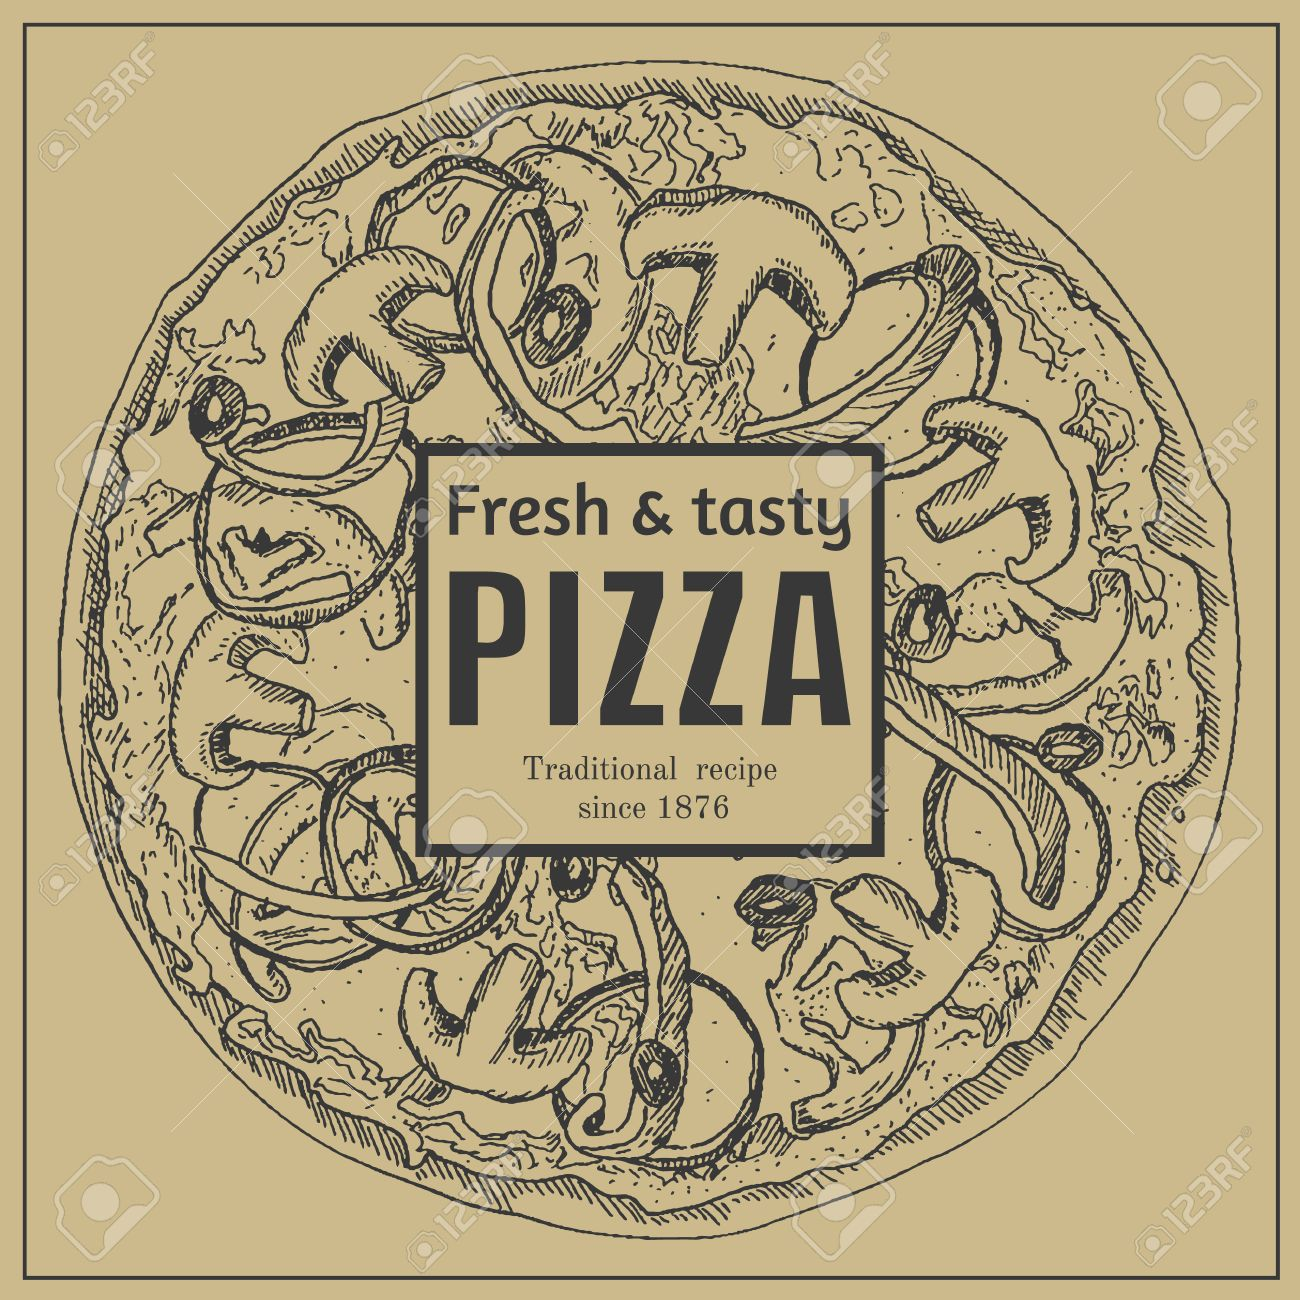 Ink Hand Drawn Pizza Package Box Template Engraving Old Fashioned Vintage Style Stock